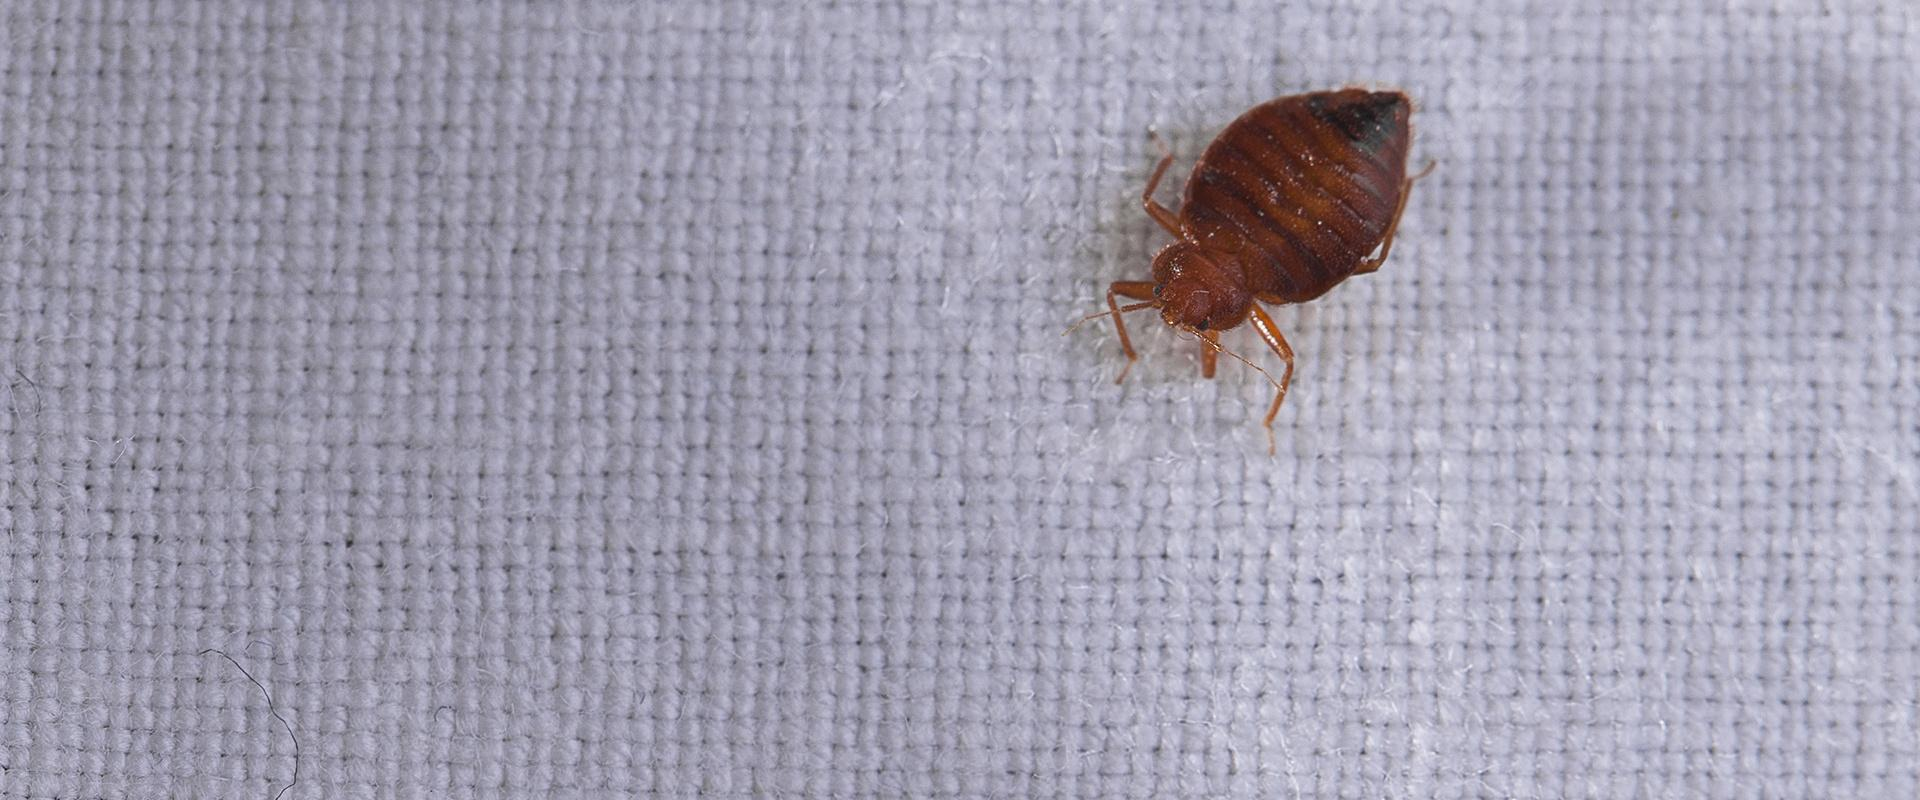 a bed bug on a sheet